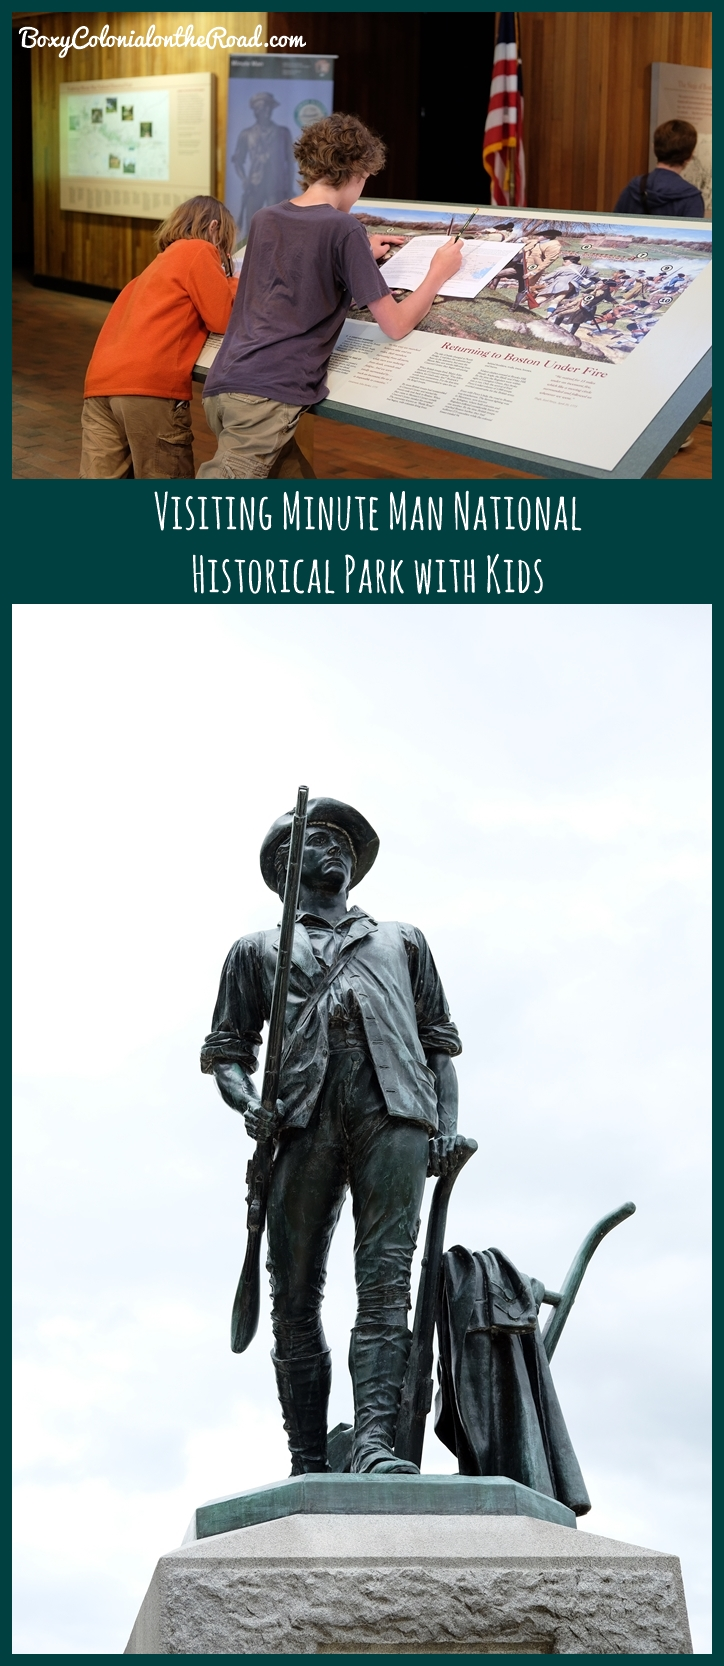 visiting the Minute Man National Historical Park in Lexington and Concord, MA with kids